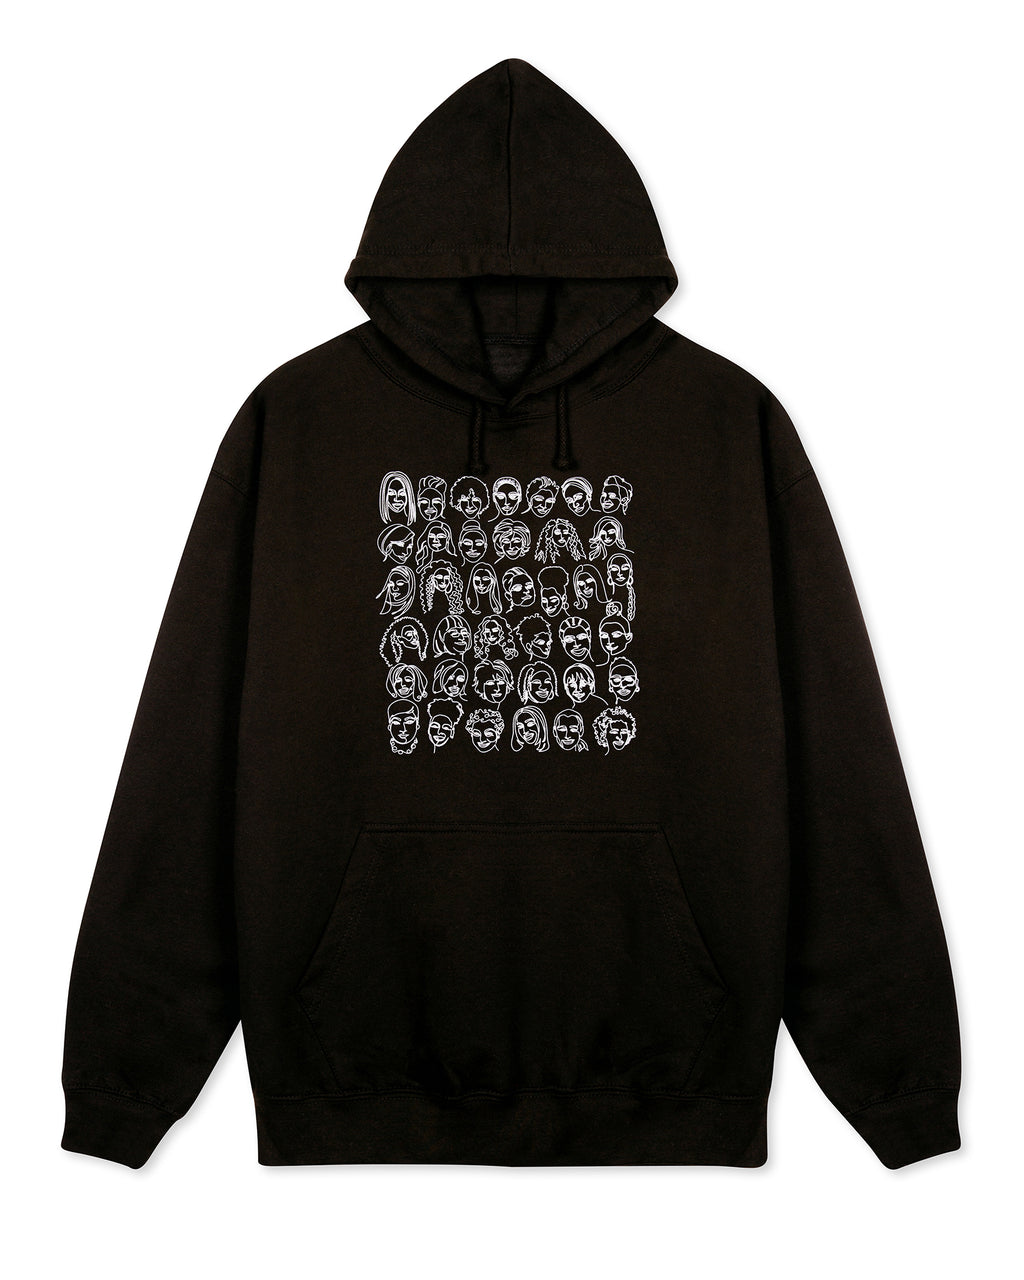 Queens of Black Britain Hoodie